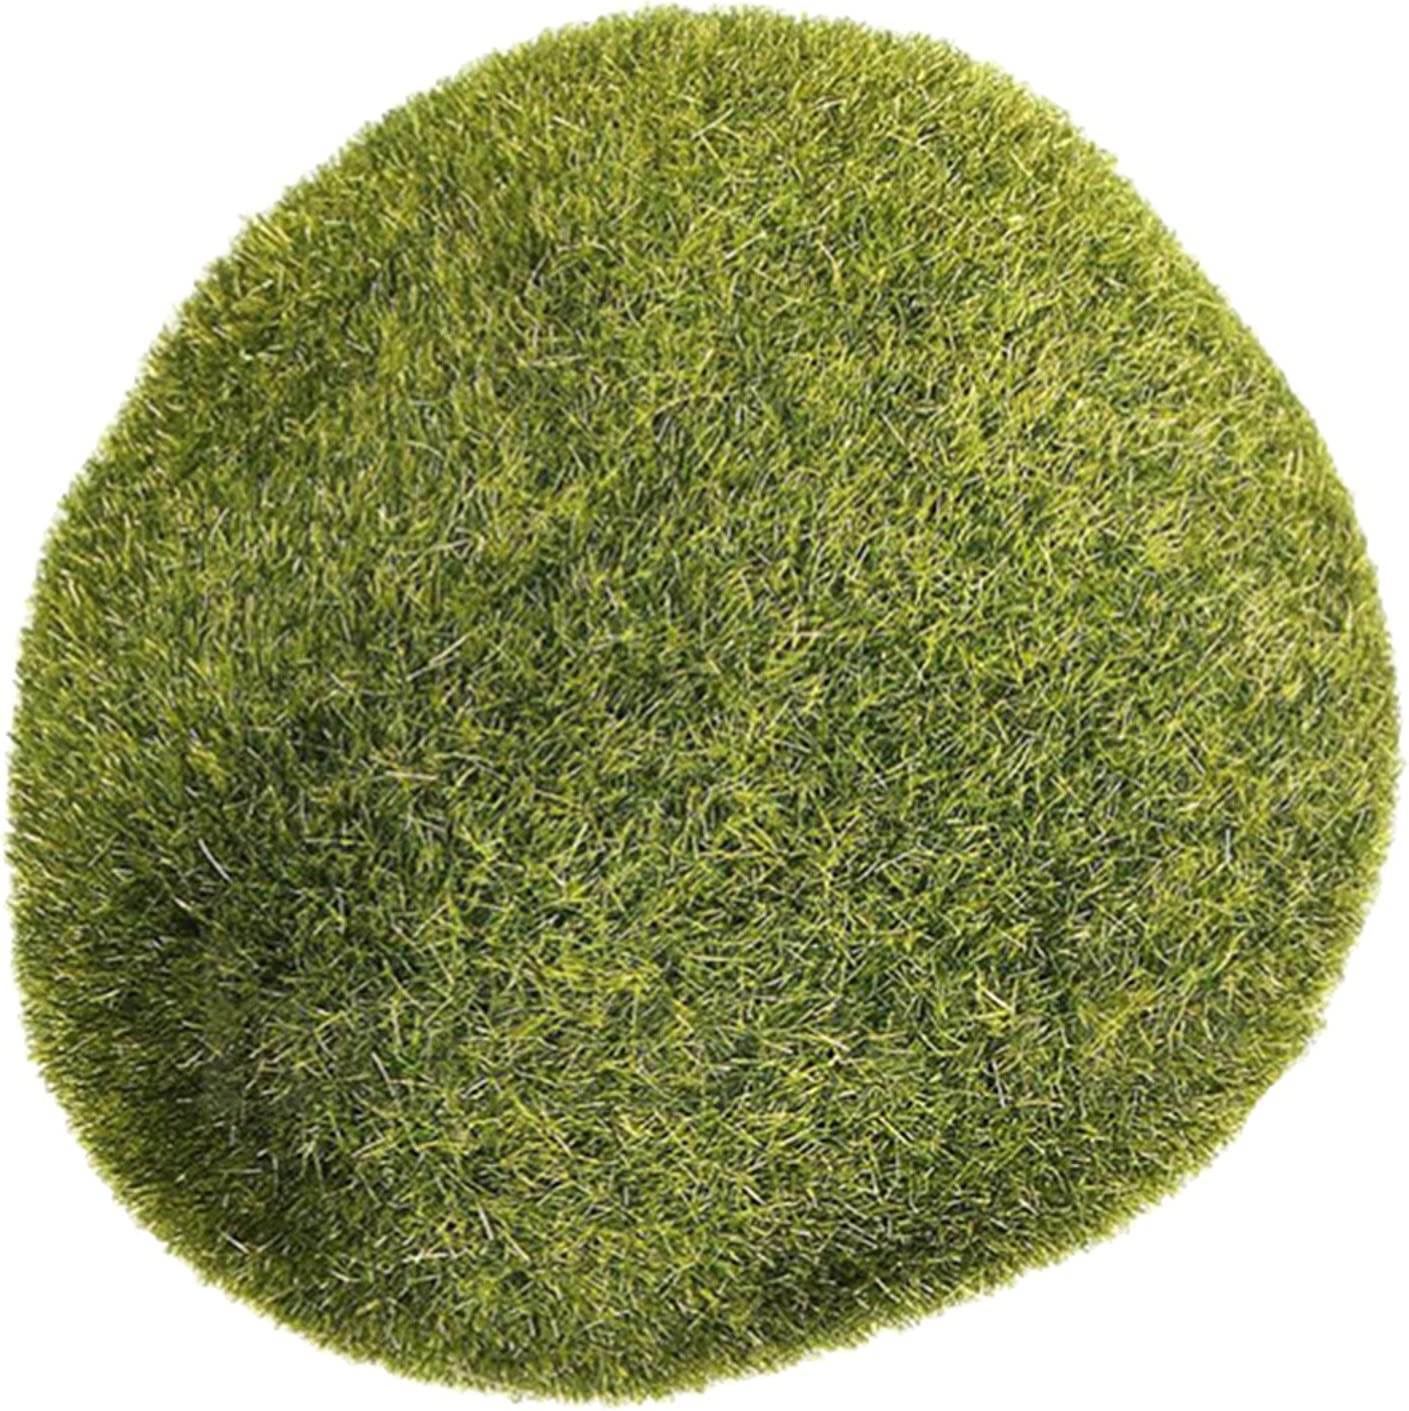 general3 Manufacturer OFFicial Ranking TOP18 shop Artificial Moss Rocks - Green Ston Faux Decorative